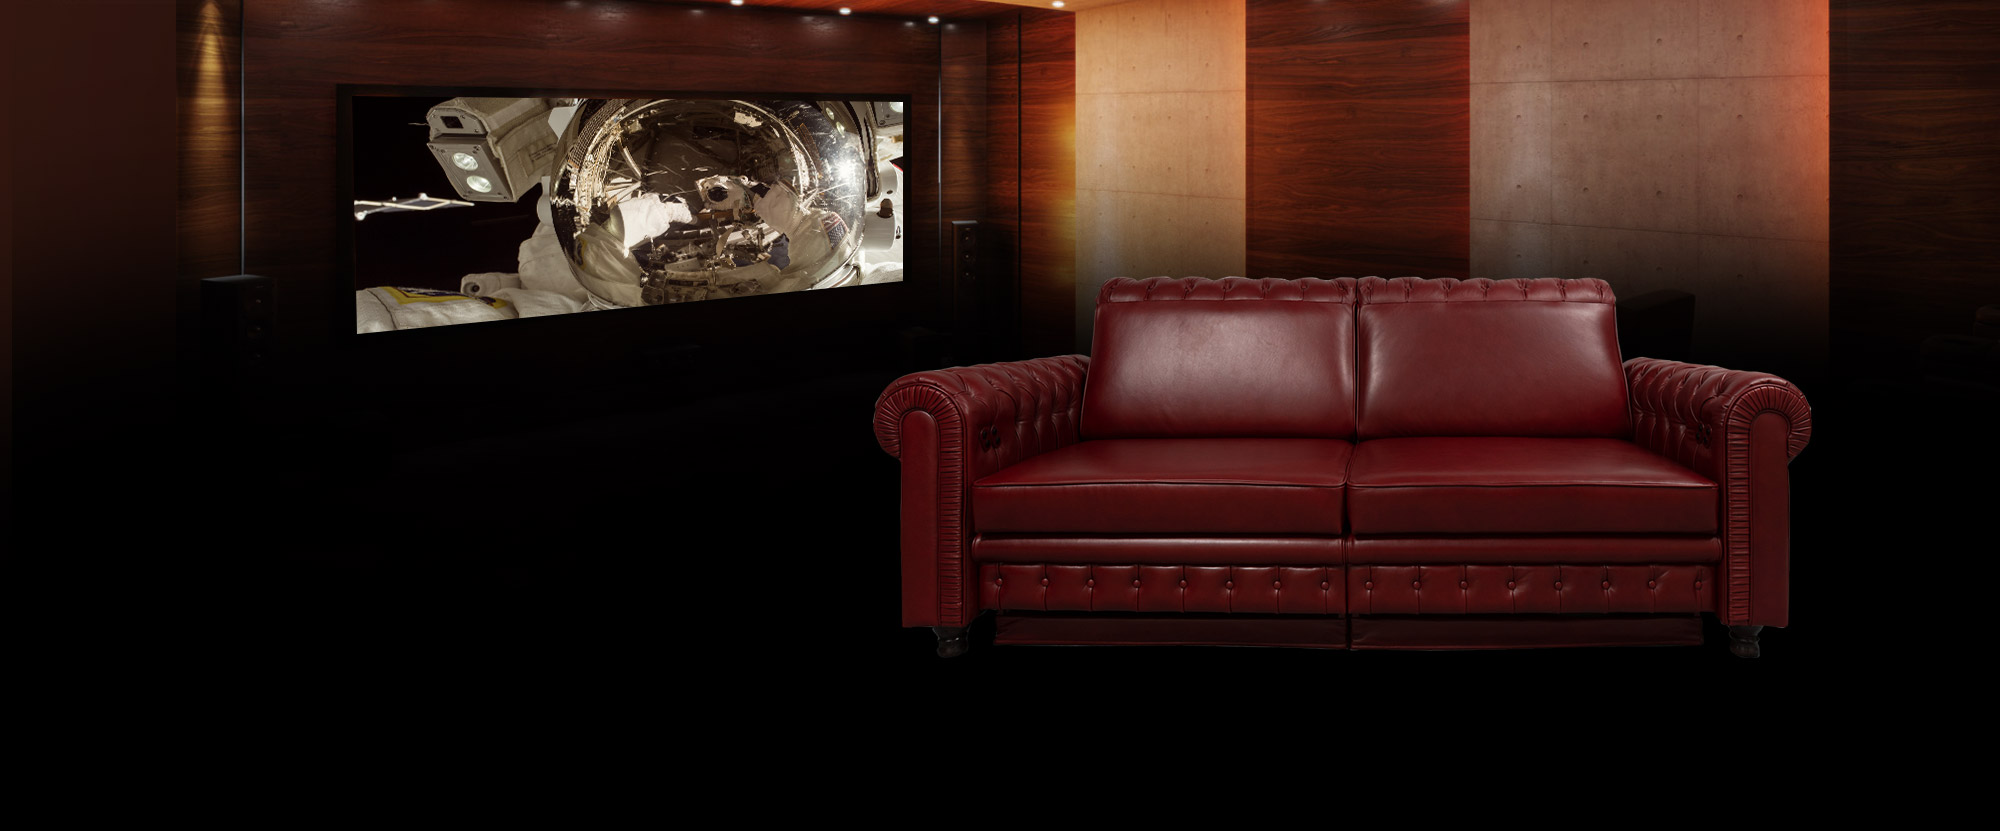 Media Room Chairs Theater Seating Home Cinema Chairs Media Room Furniture Moovia